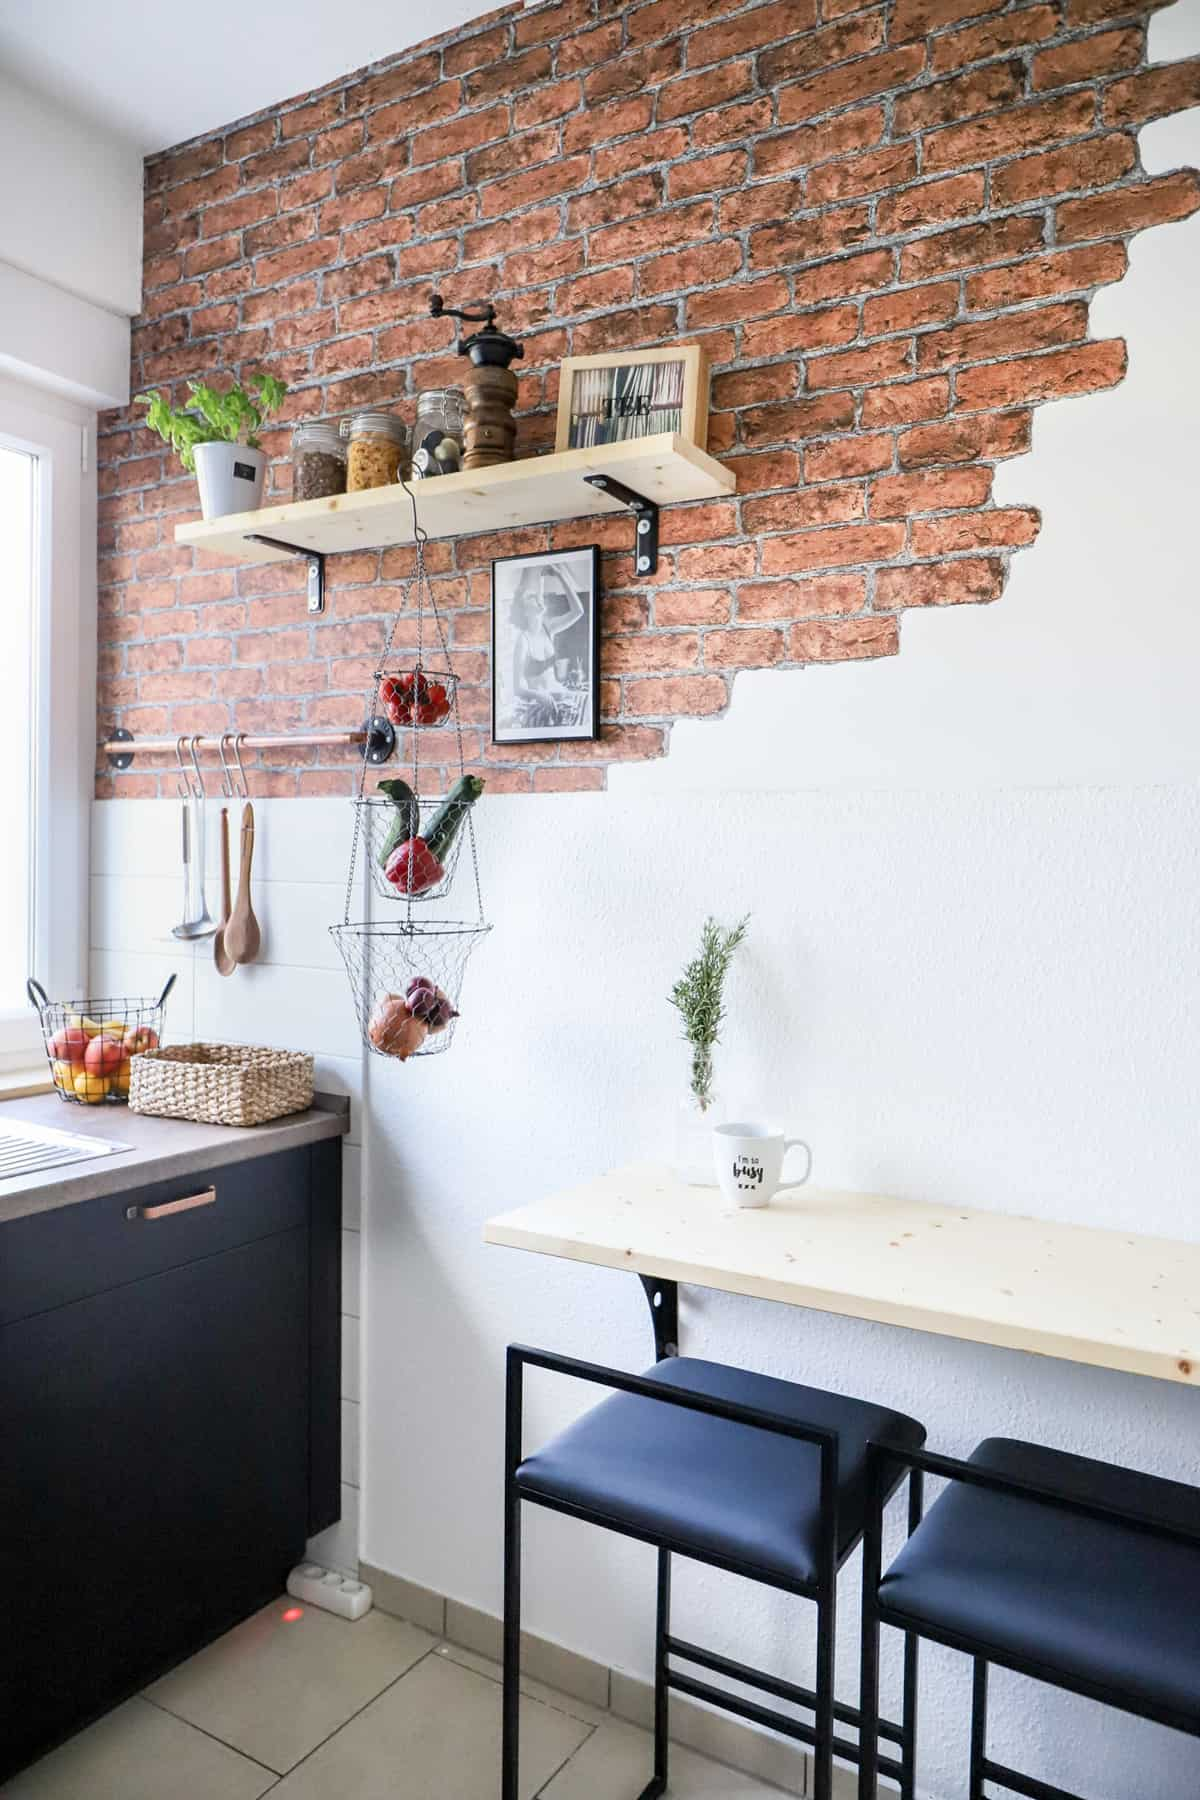 diy-industrial-regal-kueche-im-industriellen-stil